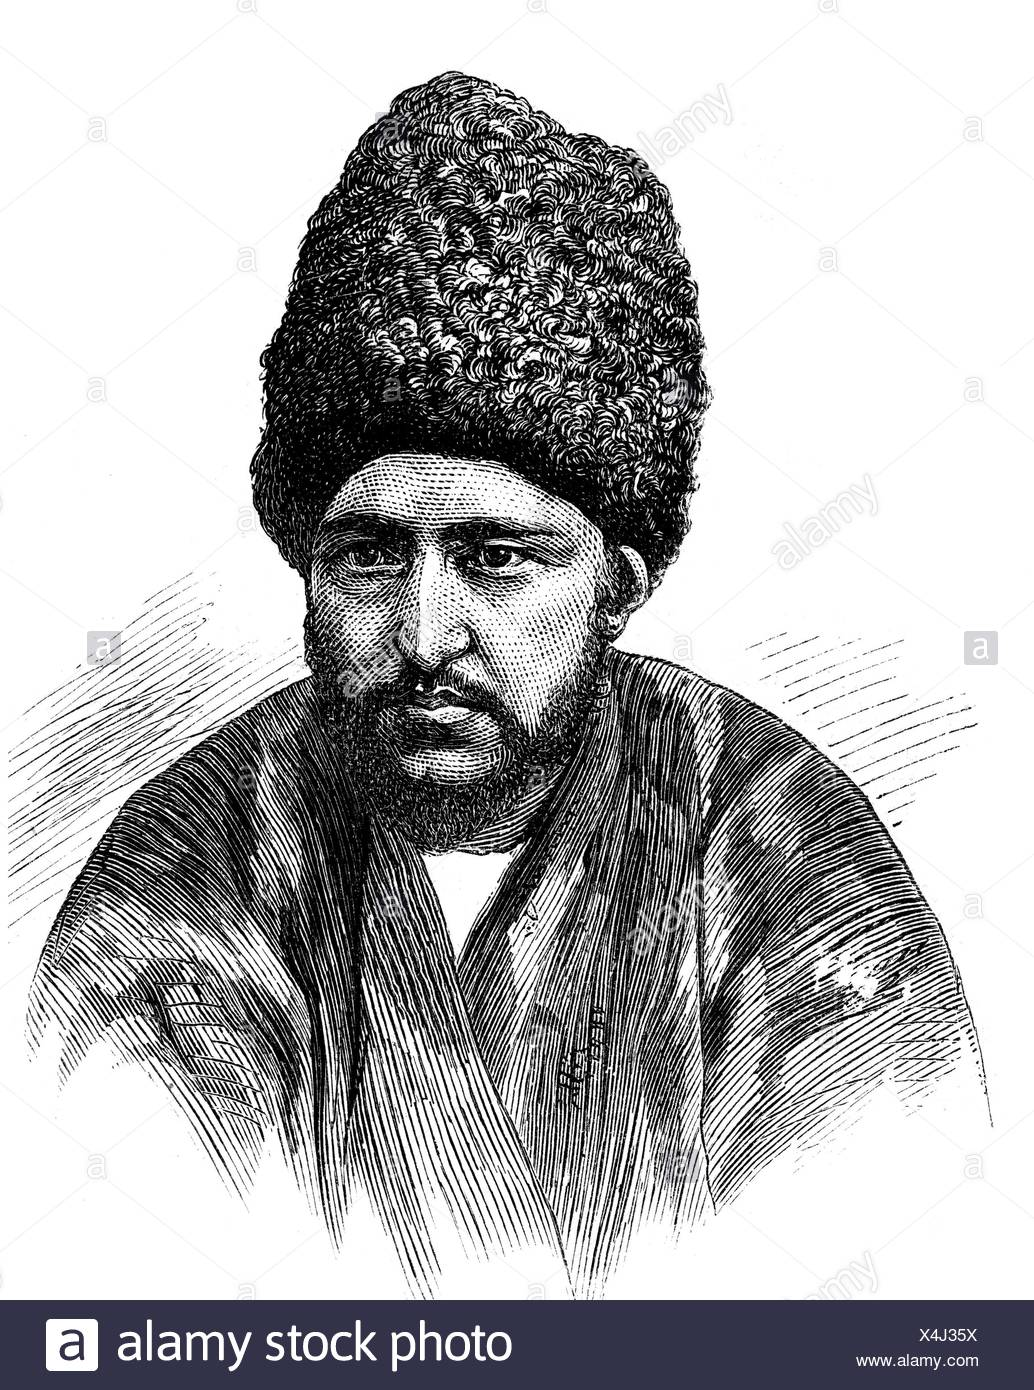 Seyyid Muhammad Rahim Khan II, + 1910, Prince of Xiva since 1868, portrait, wood engraving, 2nd half of the 19th century, Additional-Rights-Clearances-NA Stock Photo